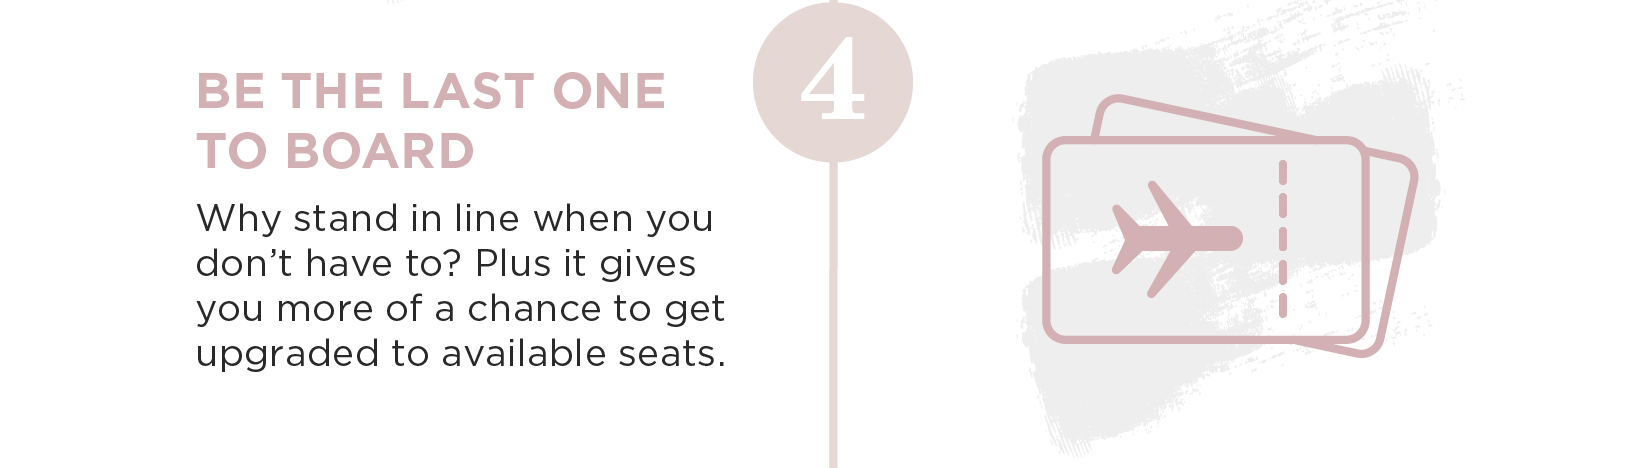 Be the last one to board. Why stand in line when you don't have to? Plus it gives you more chances to get upgraded to available seats.